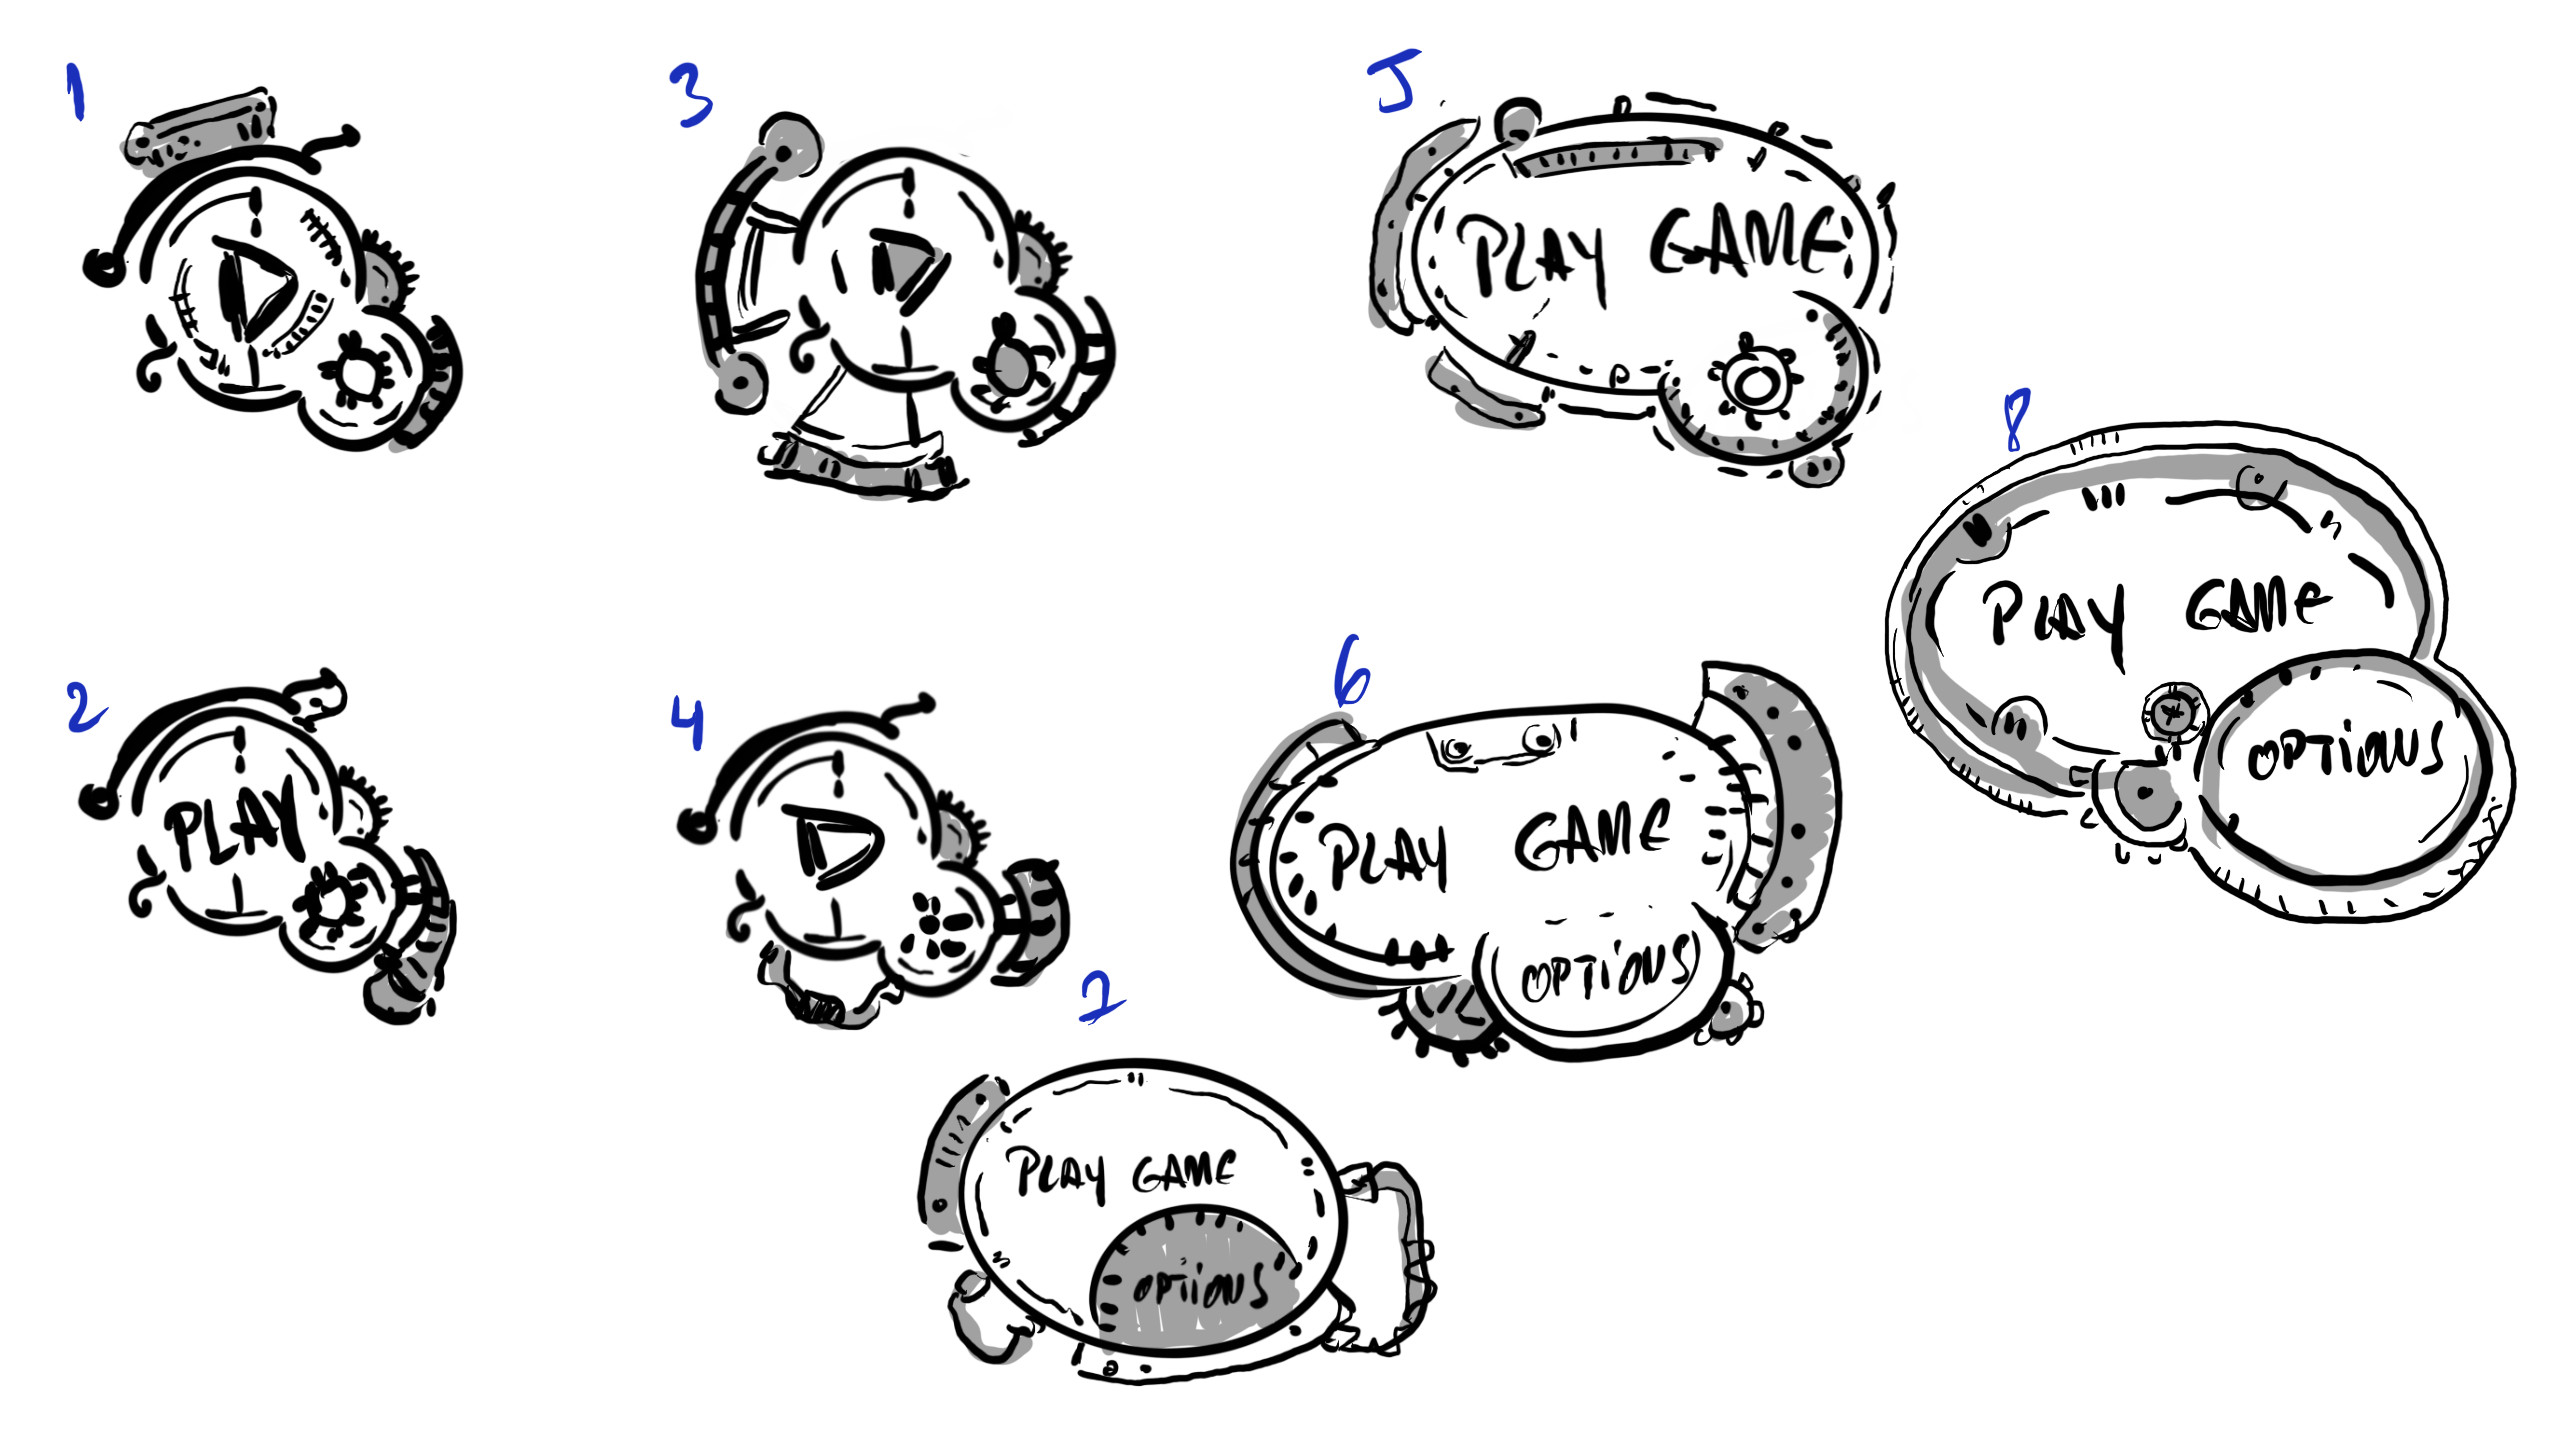 Start Buttons concept sketches